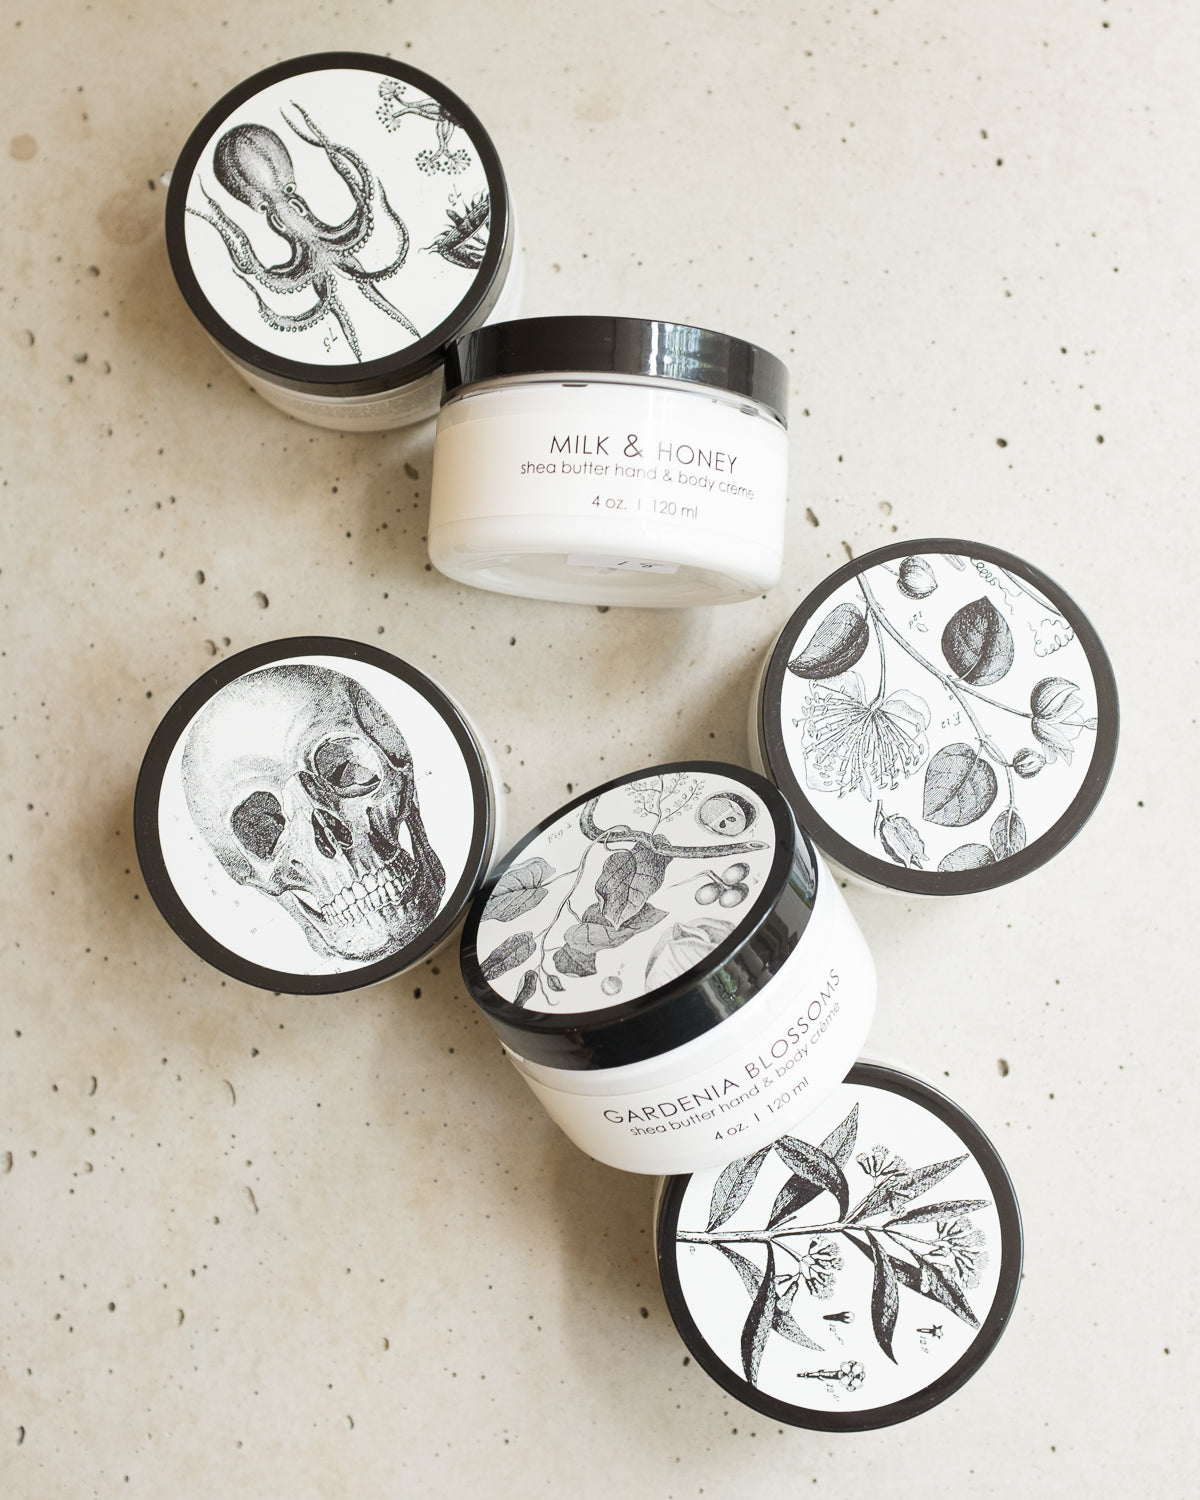 Hand cream in black and white jars.